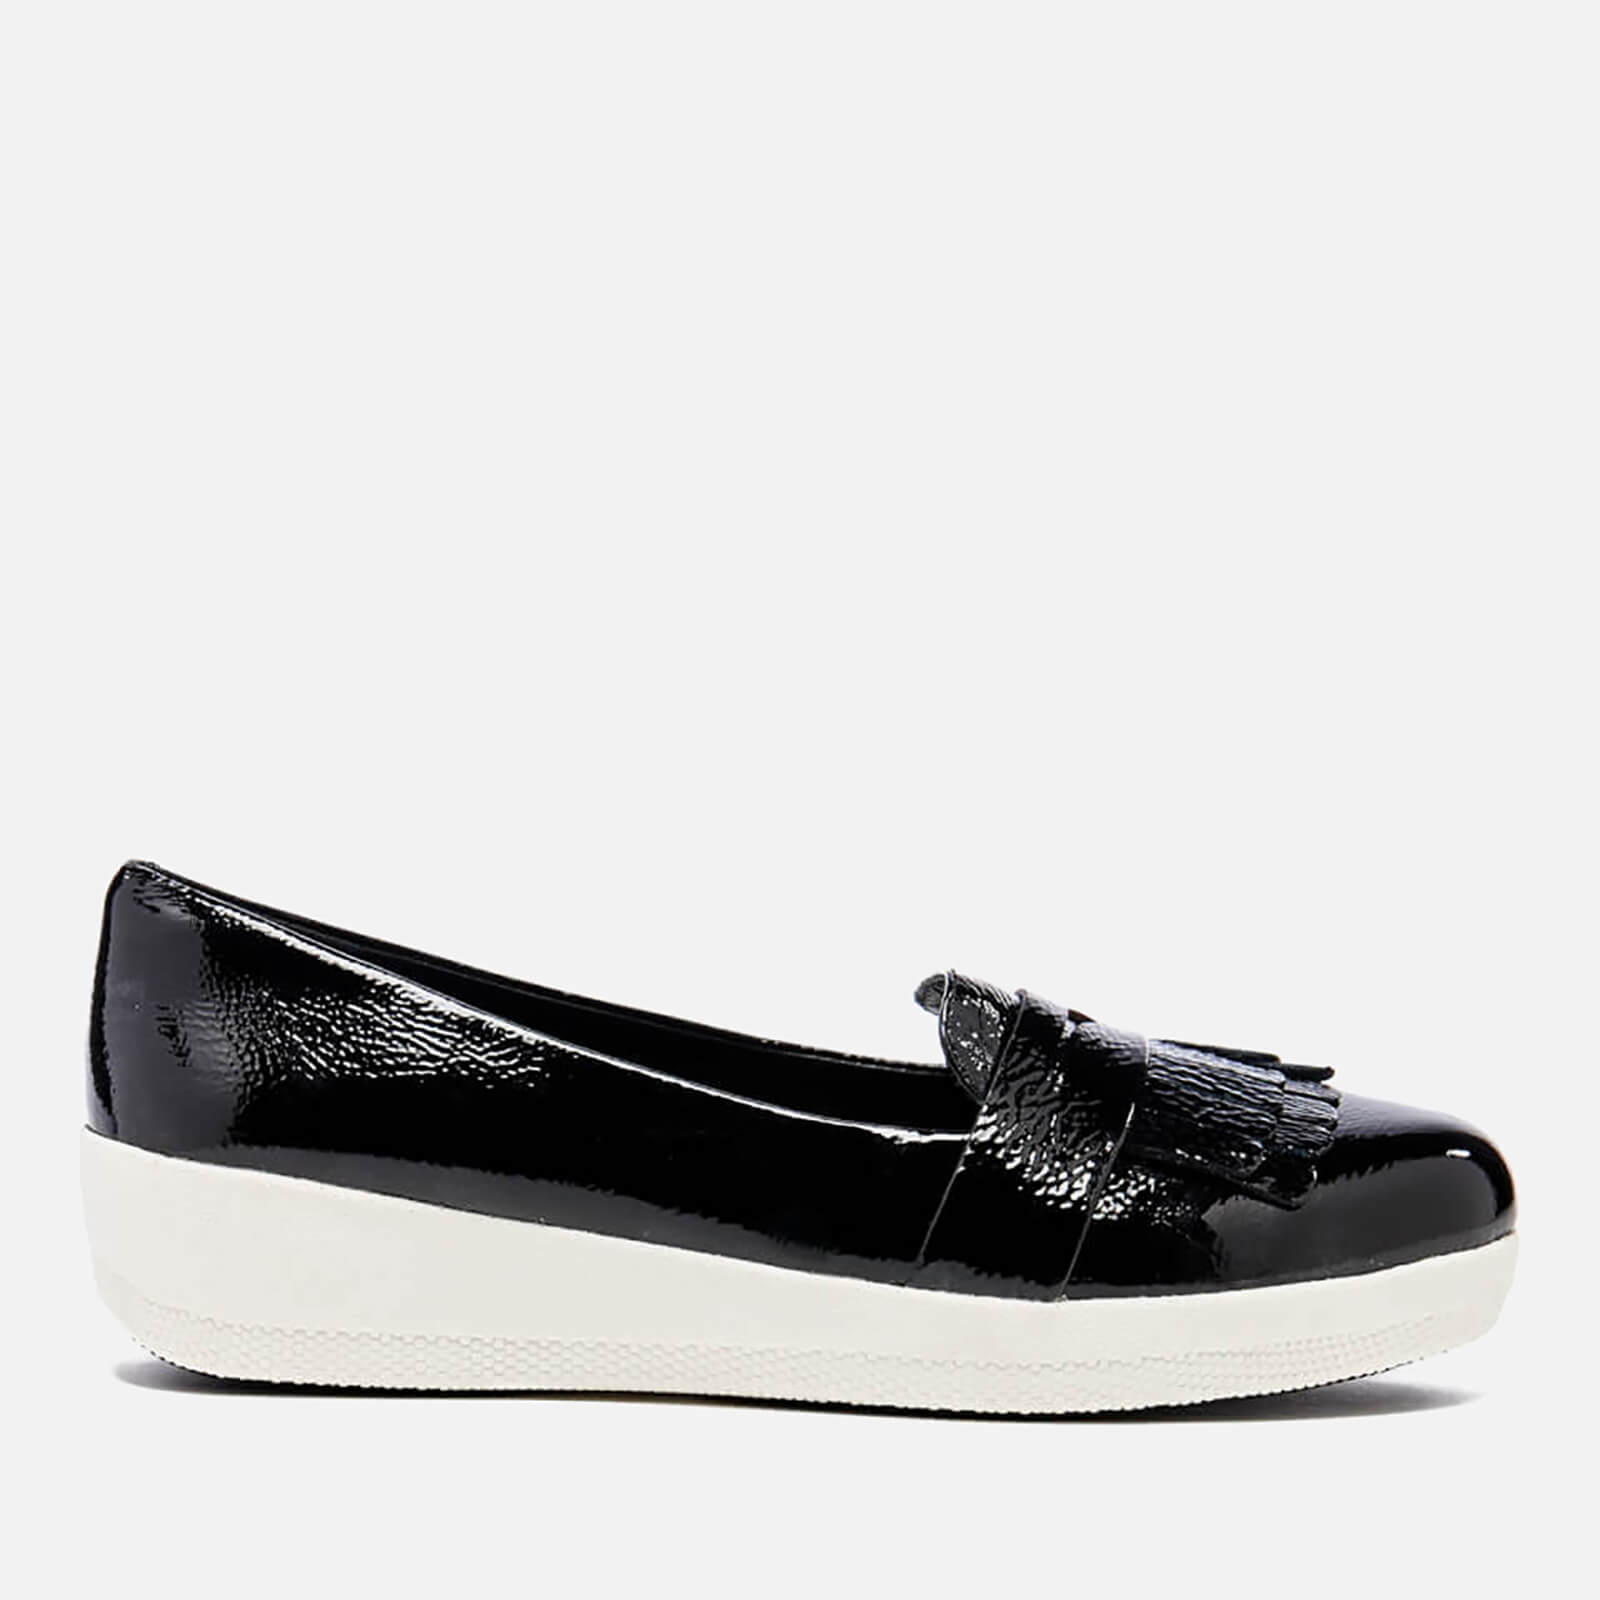 a1f2f36fc45 FitFlop Women s Fringey Sneakerloafer Loafers - Black Patent